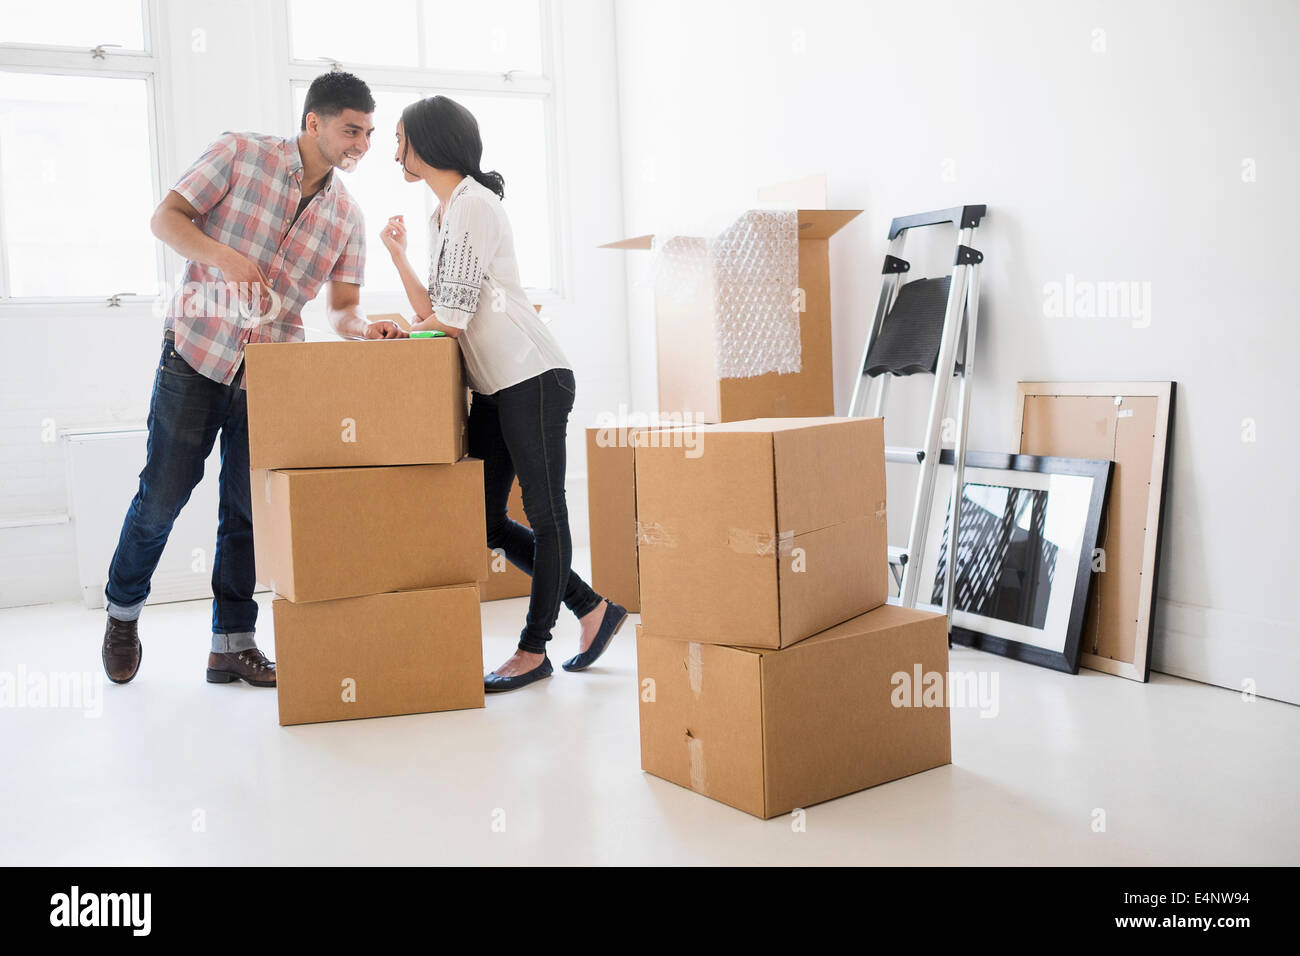 Young couple standing among boxes in new home - Stock Image